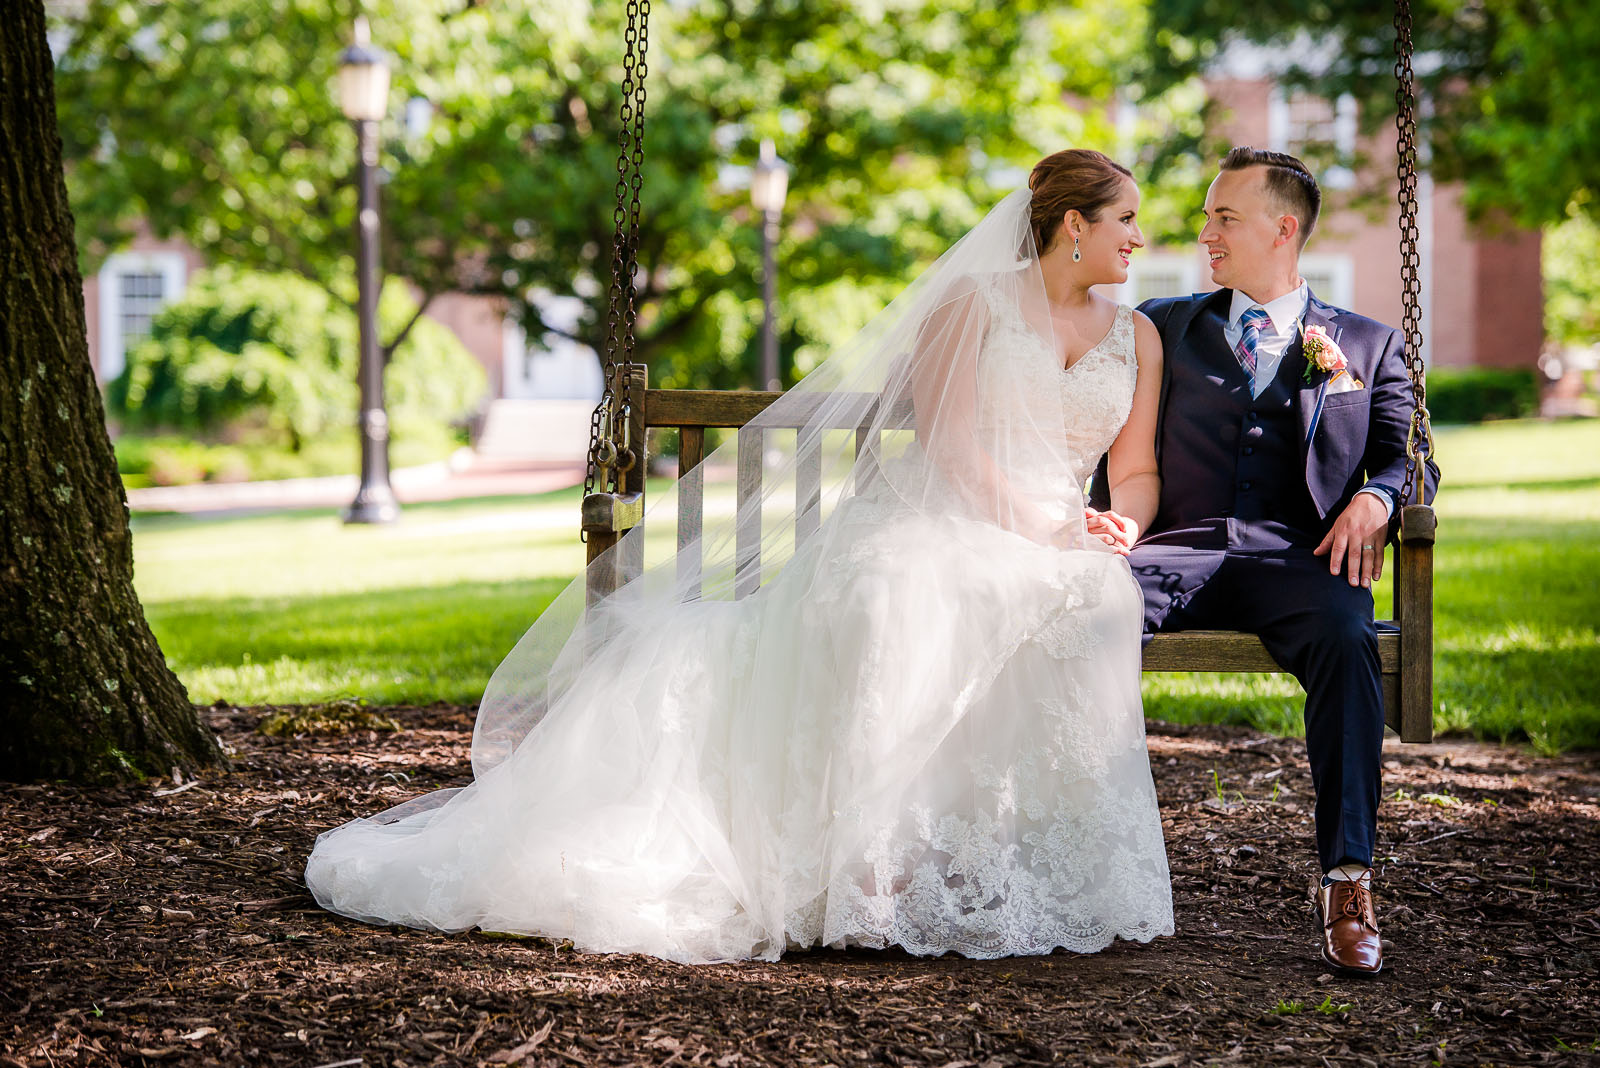 Eric_and_Christy_Photography_Blog_2018_Portraits-45